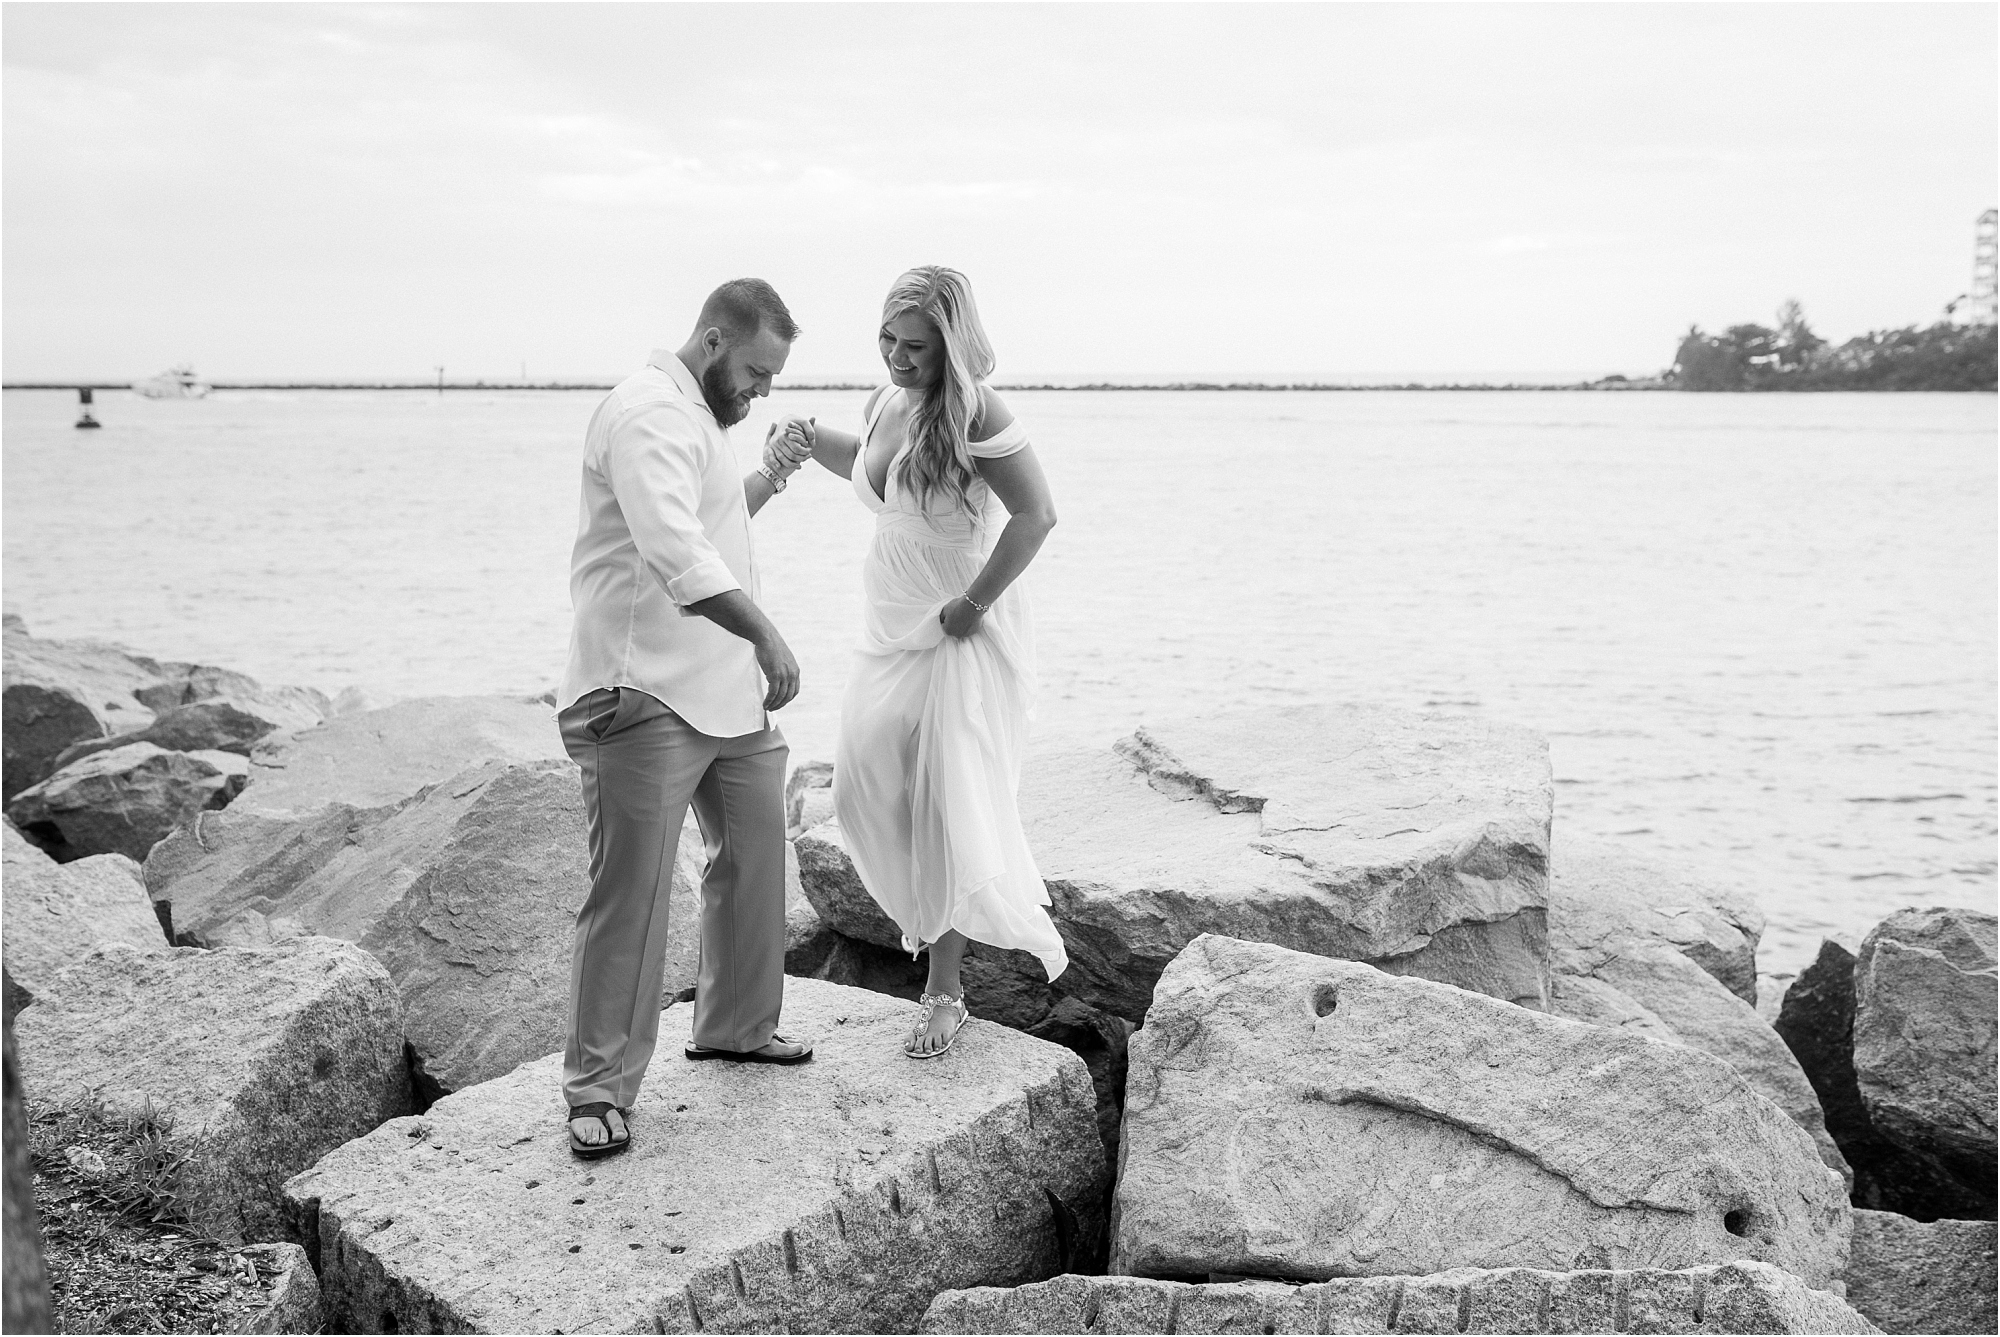 south pointe park-anniversary outdoor photo session-jessenia-gonzalez-weddings_1303.jpg